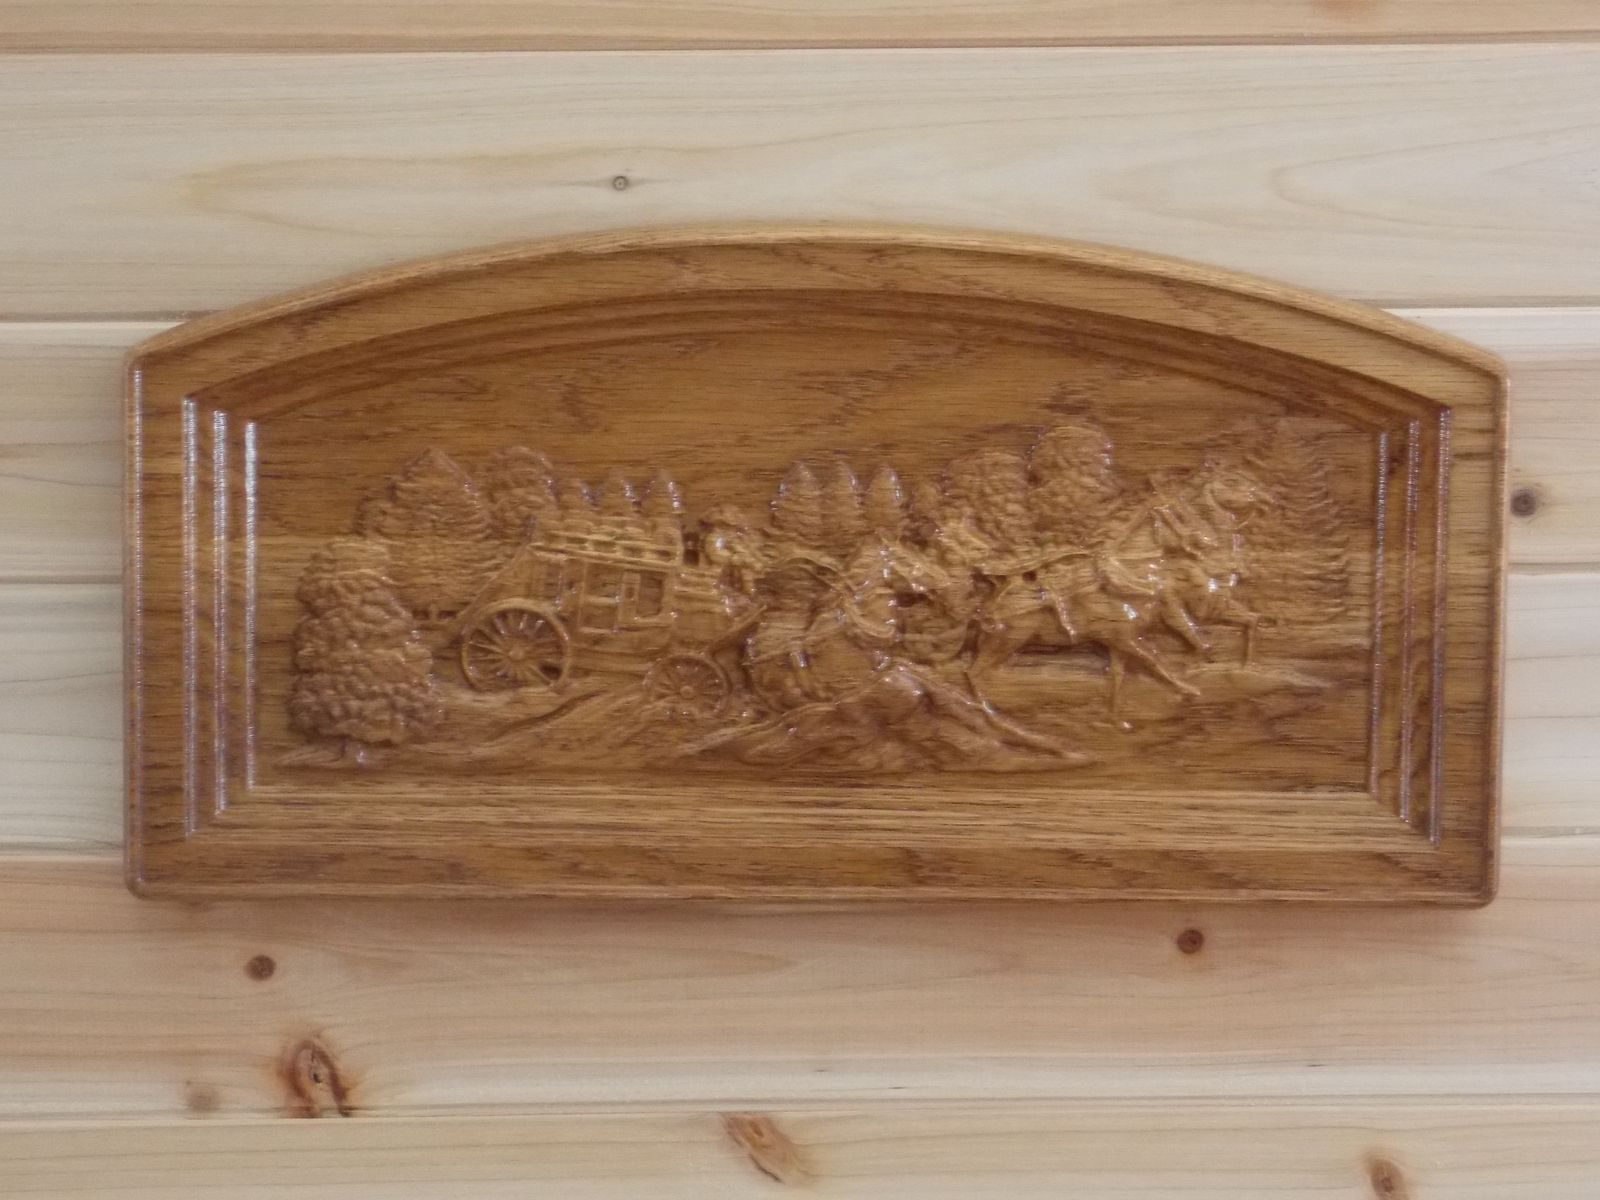 Western Wood Wall Decor : Hand crafted stagecoach country western wall decor rustic